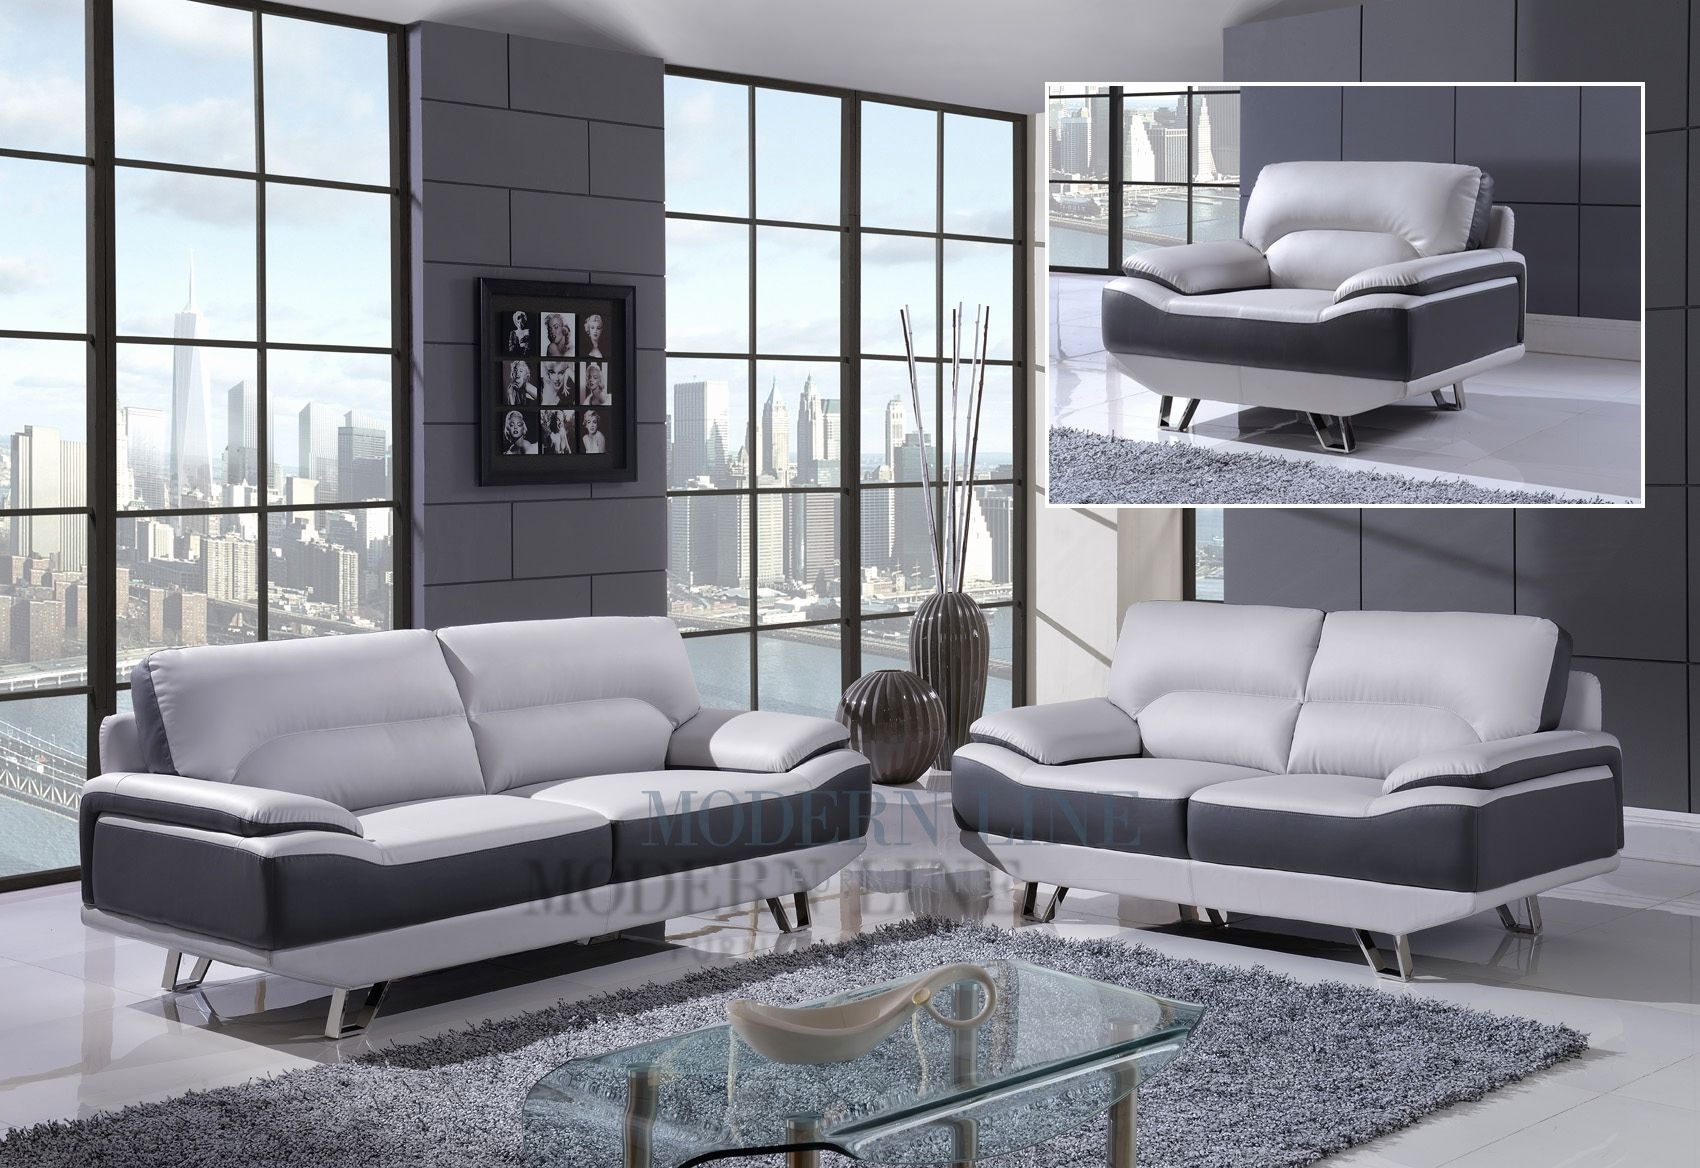 New Living Room Leather Sofa Sets Picture Cool Gray Leather Living Room Furniture 35 In With Gray Living Room Leather Global Furniture Leather Living Room Set